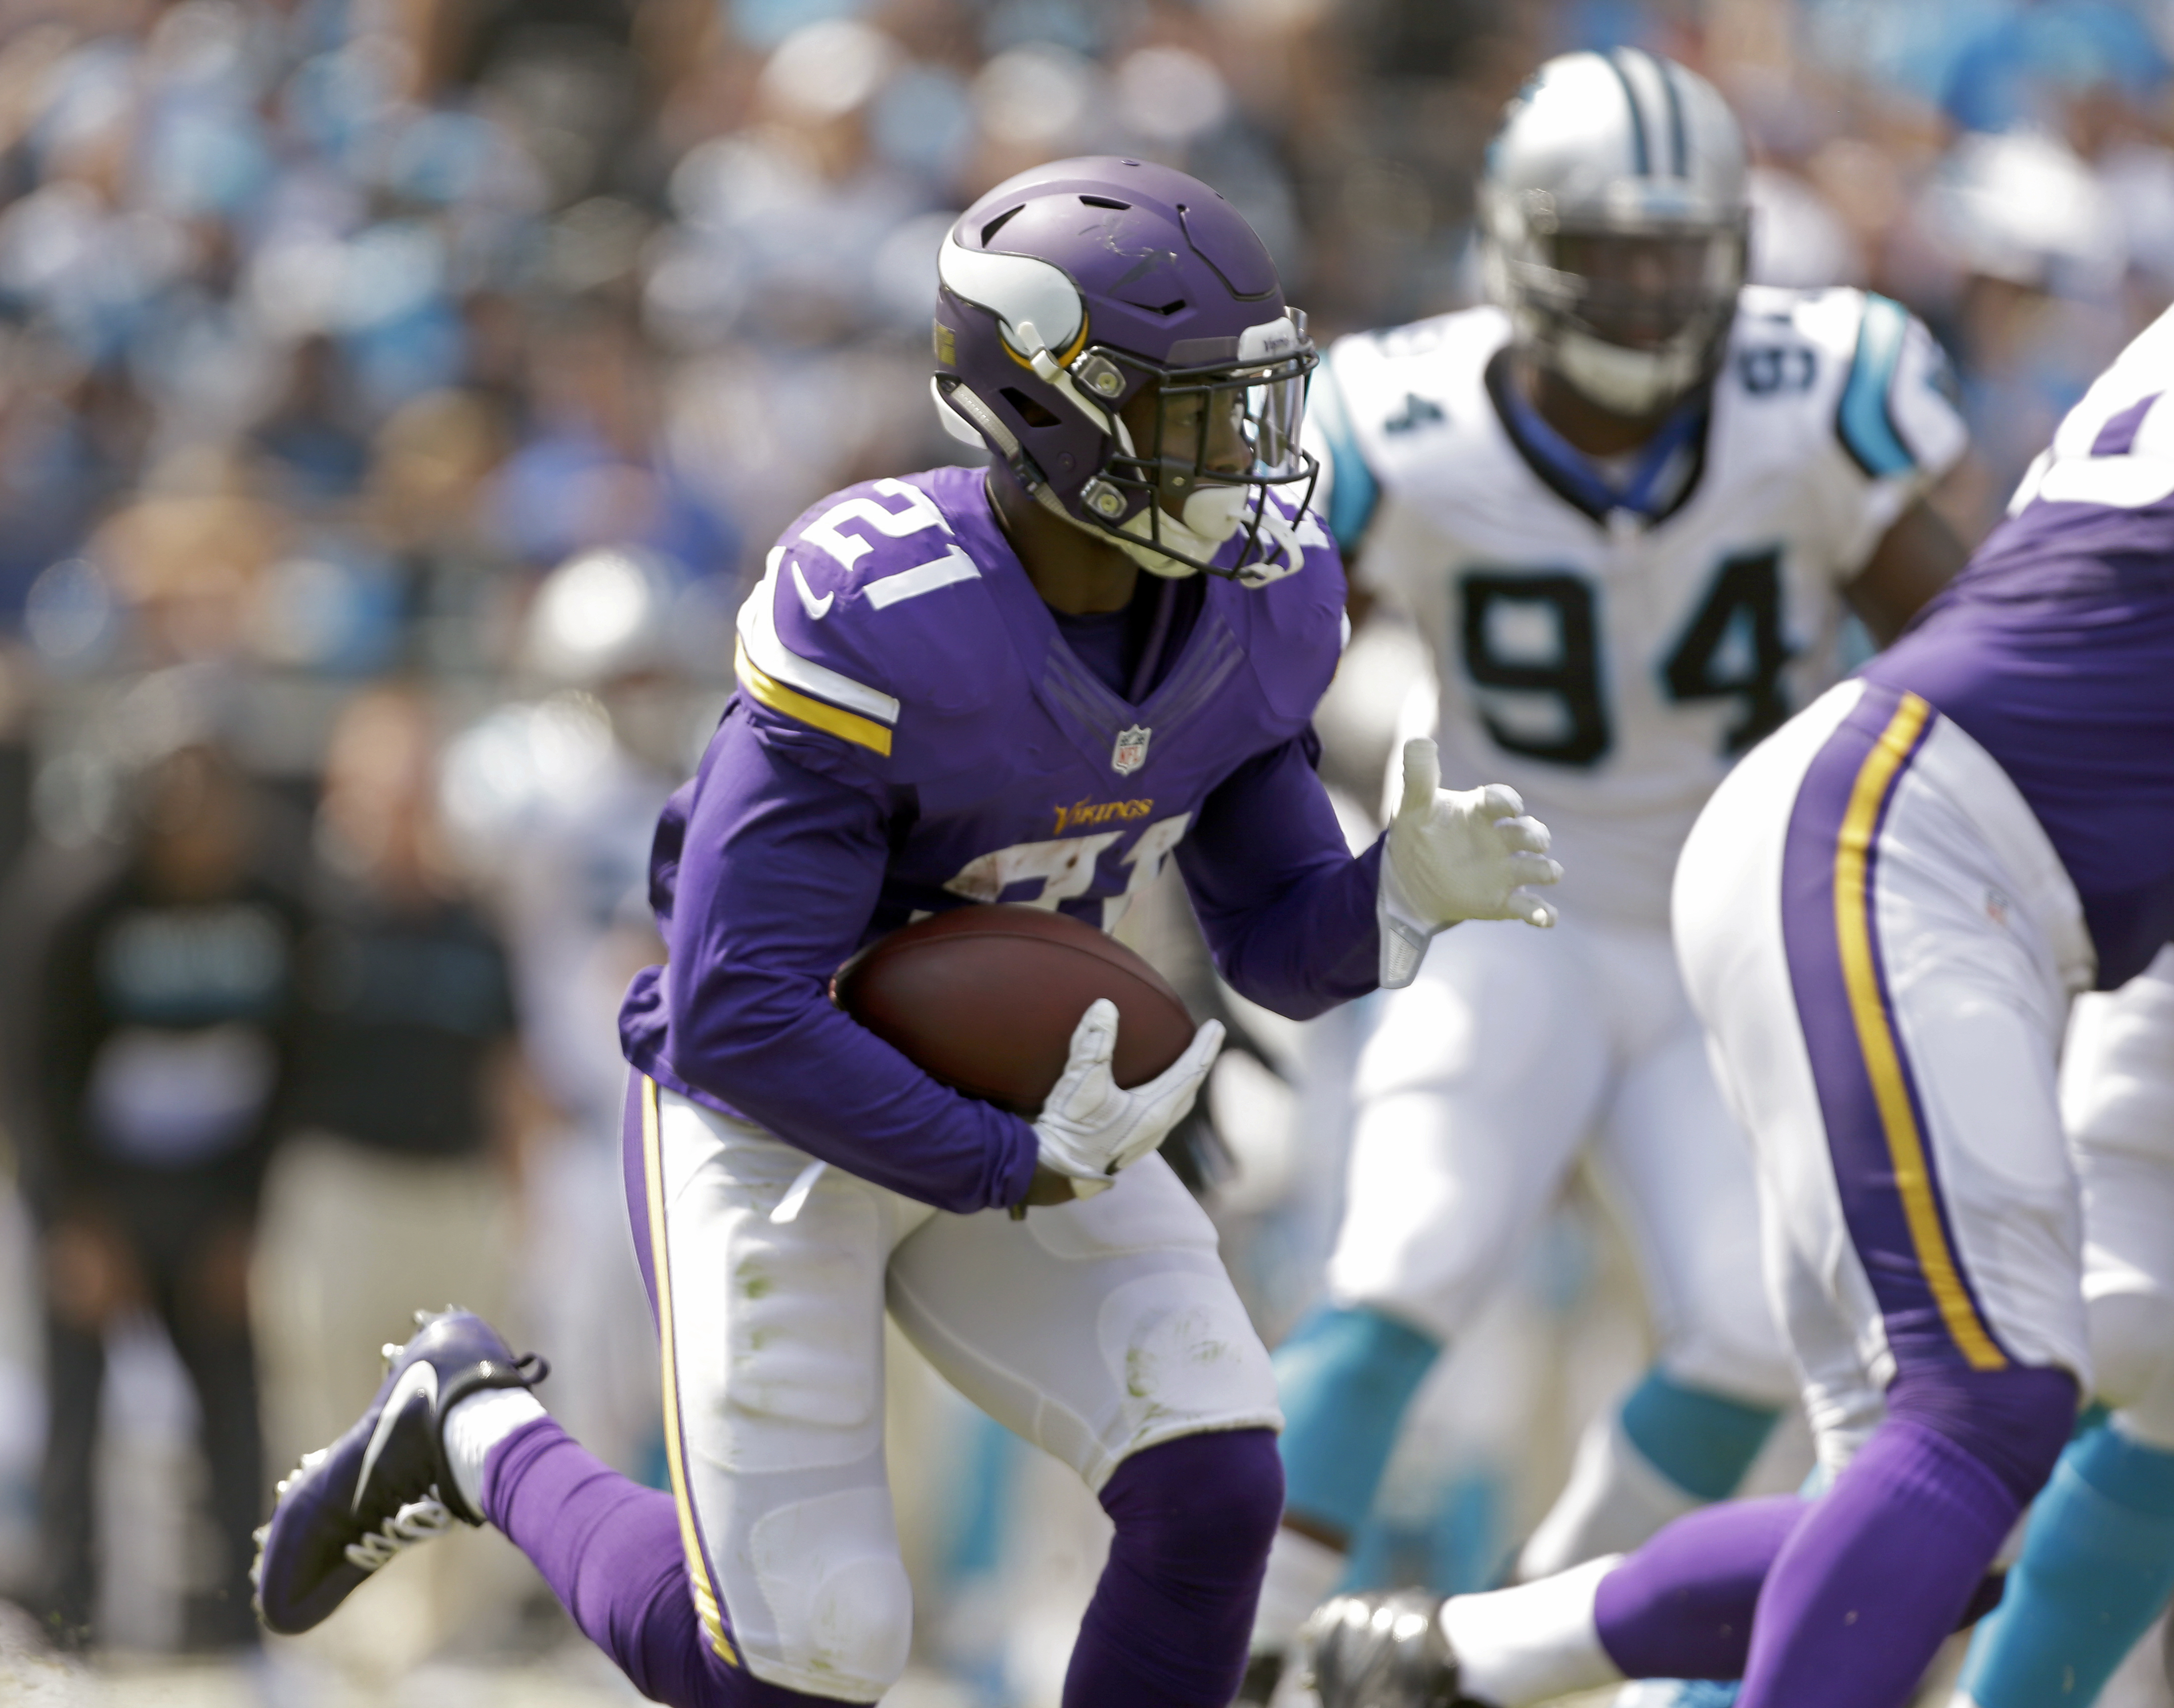 FILE - In this Sept. 18, 2016, file photo, Minnesota Vikings' Jerick McKinnon (21) looks to turn the corner against the Carolina Panthers during an NFL football game in Charlotte, N.C. The Vikings, whove turned to McKinnon and Matt Asiata with Adrian Pete